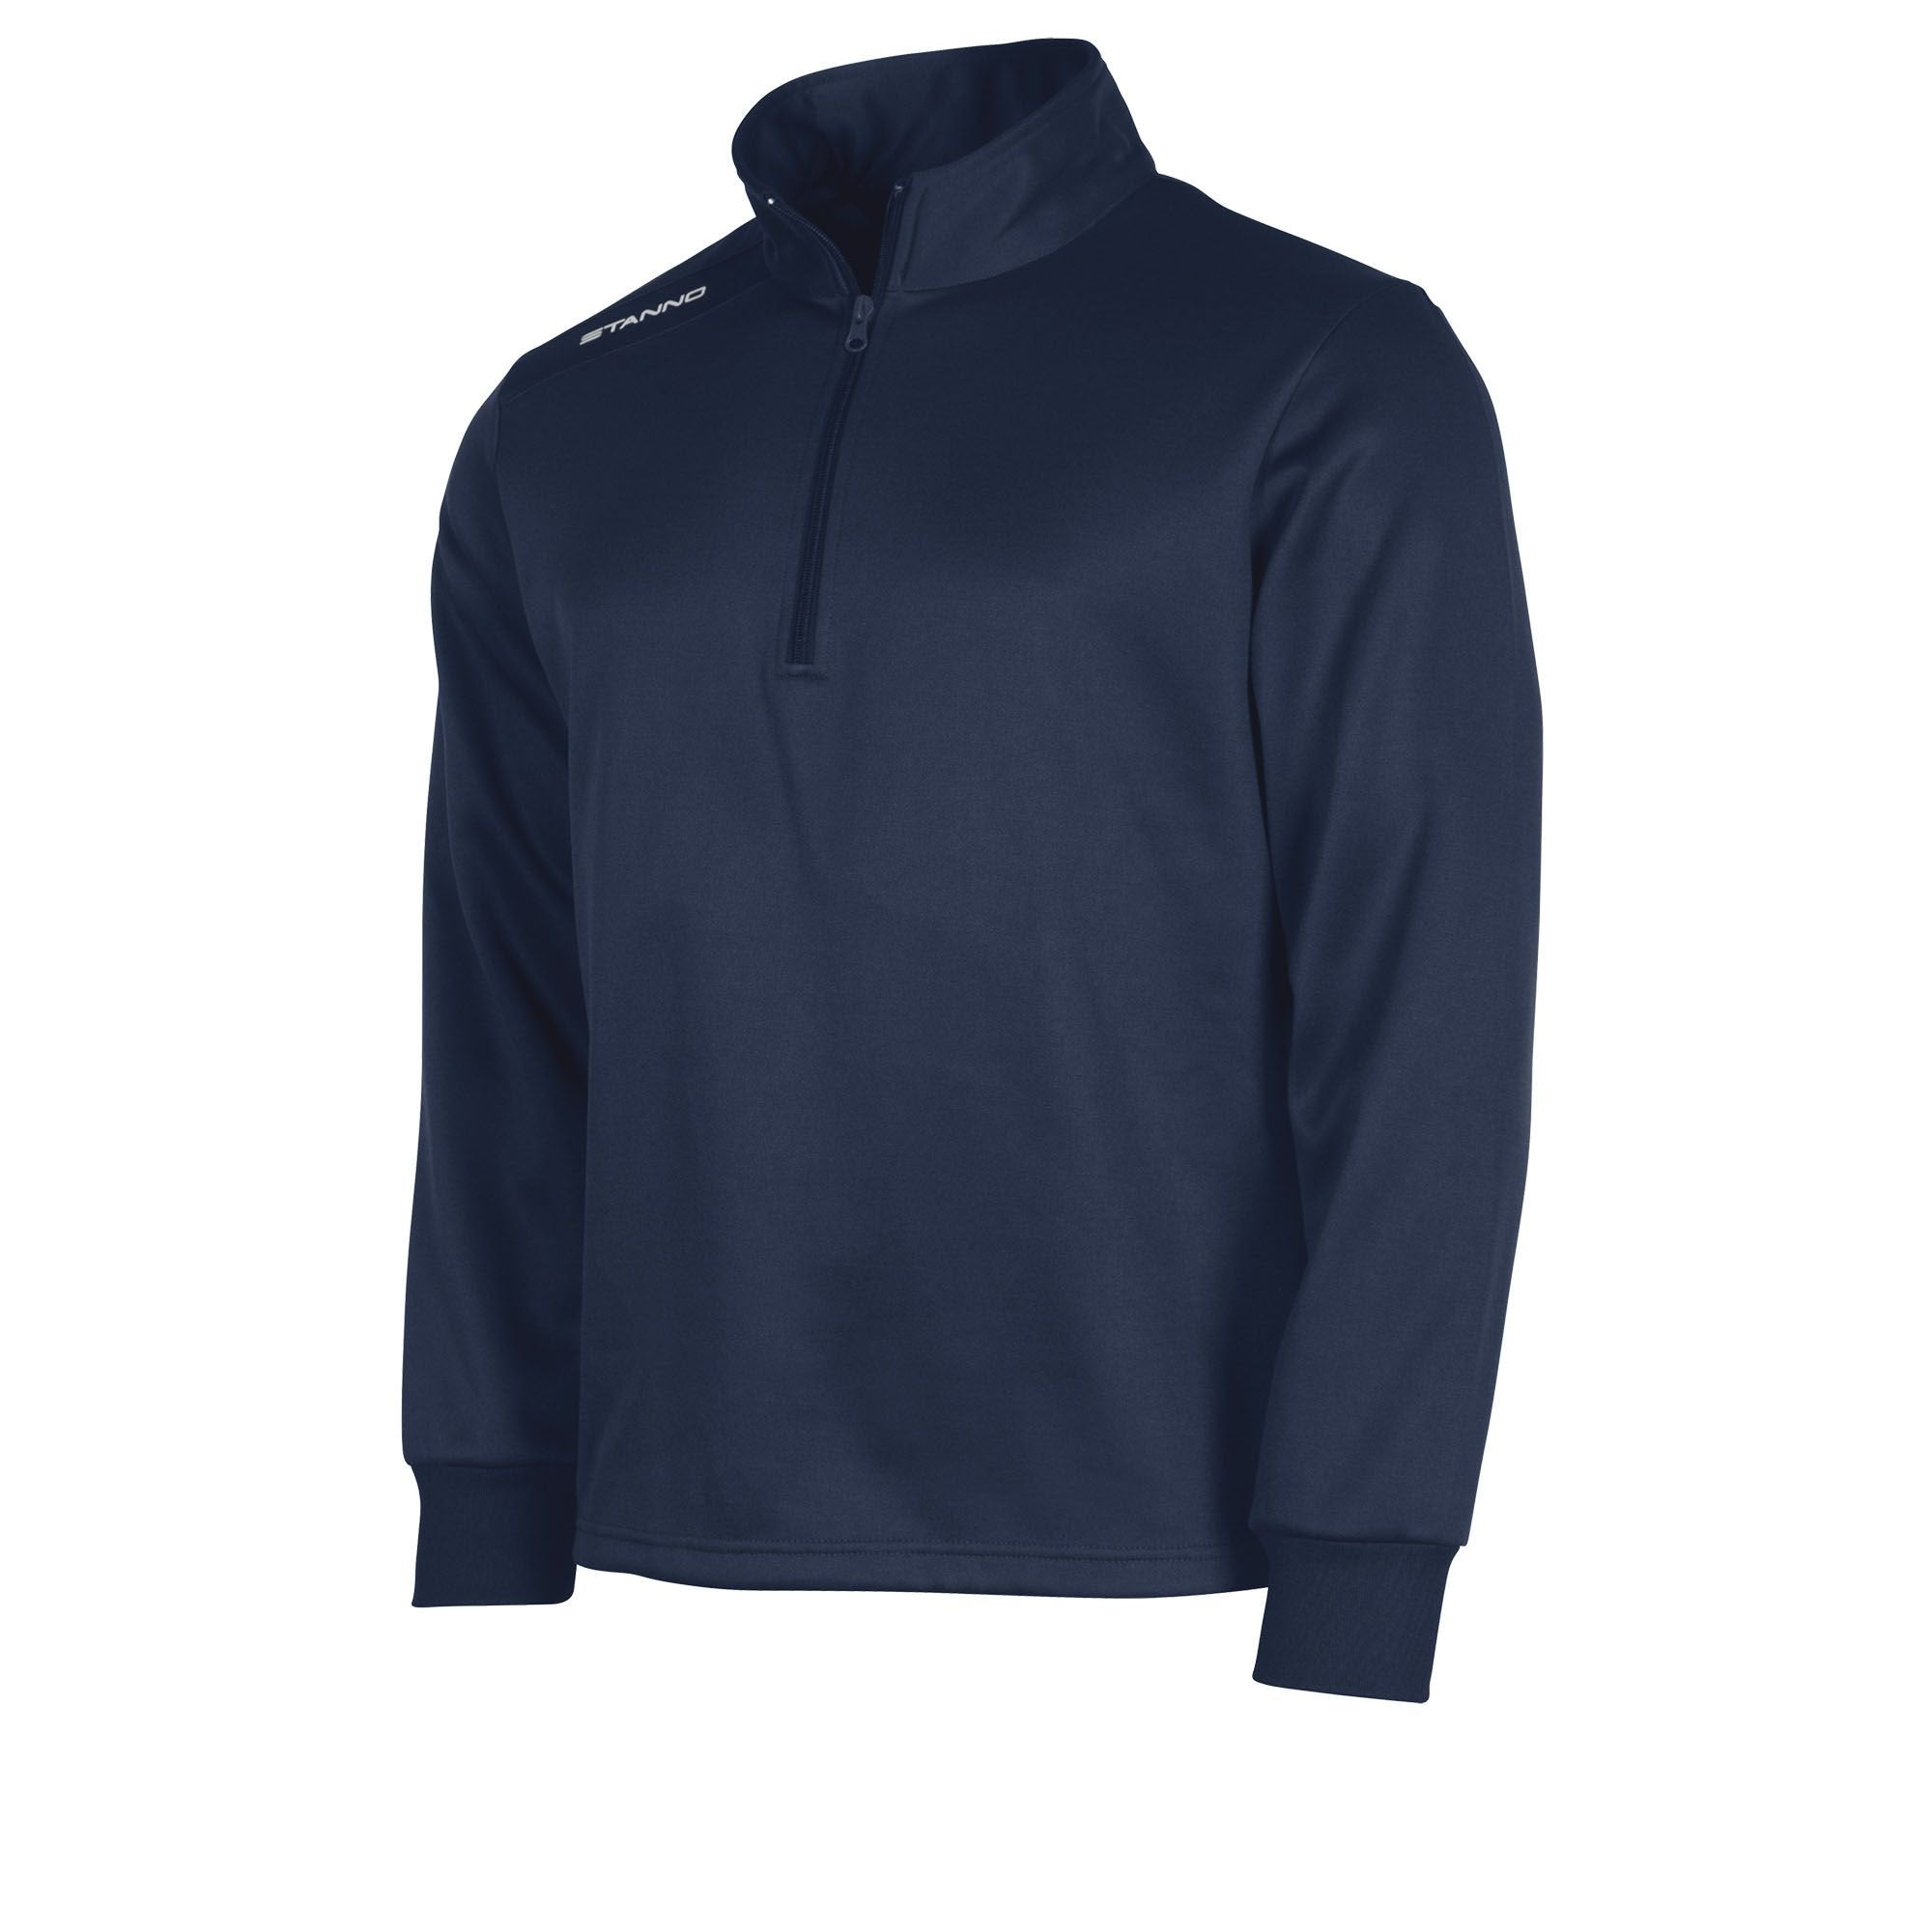 Front of navy Stanno Field half zip top with white Stanno printed logo on right shoulder